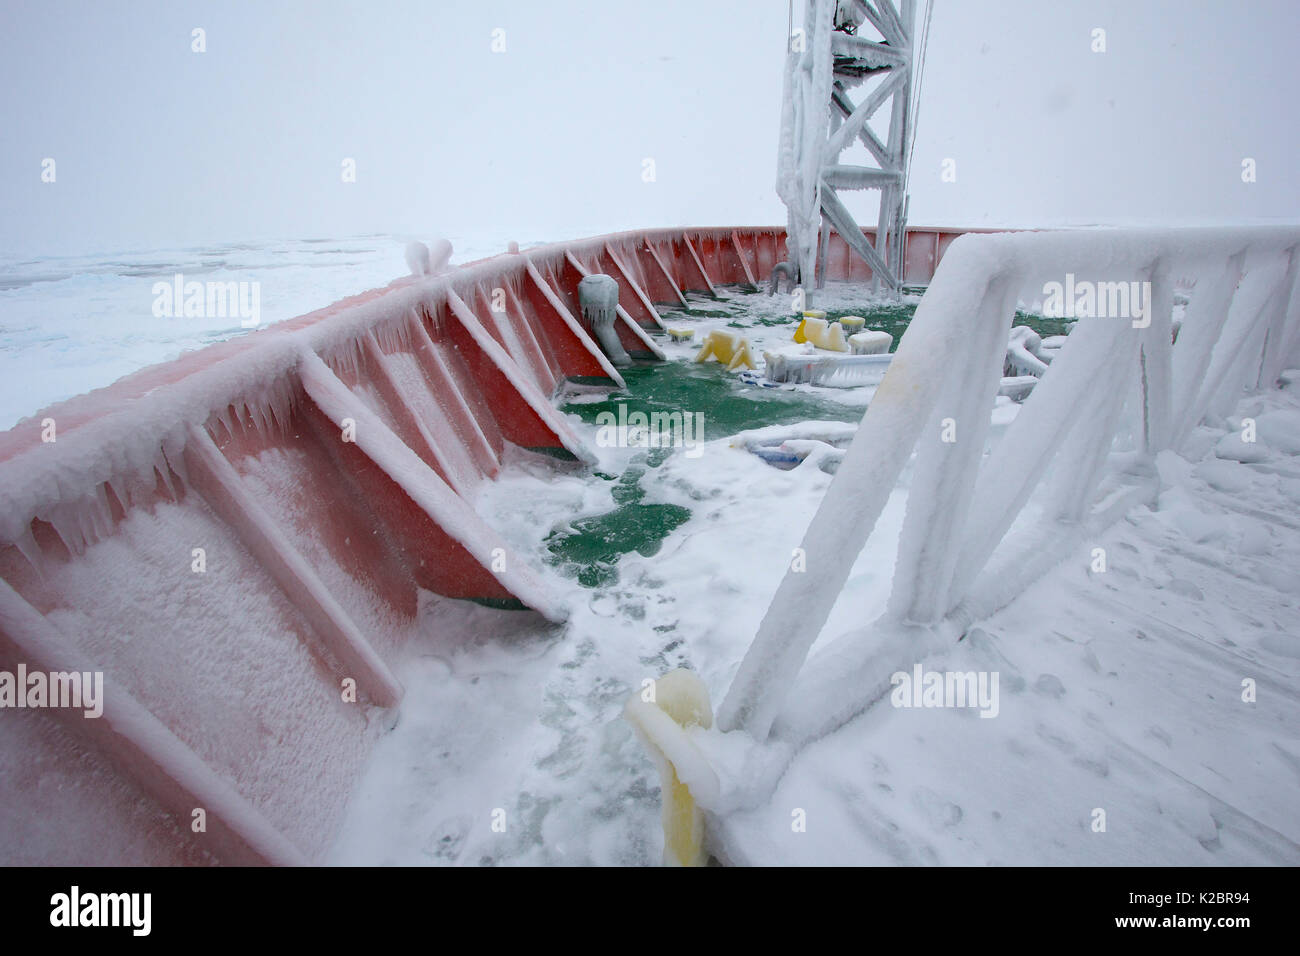 Frozen deck of the icebreaker 'Aurora Australis', Antarctica. All non-editorial uses must be cleared individually. - Stock Image